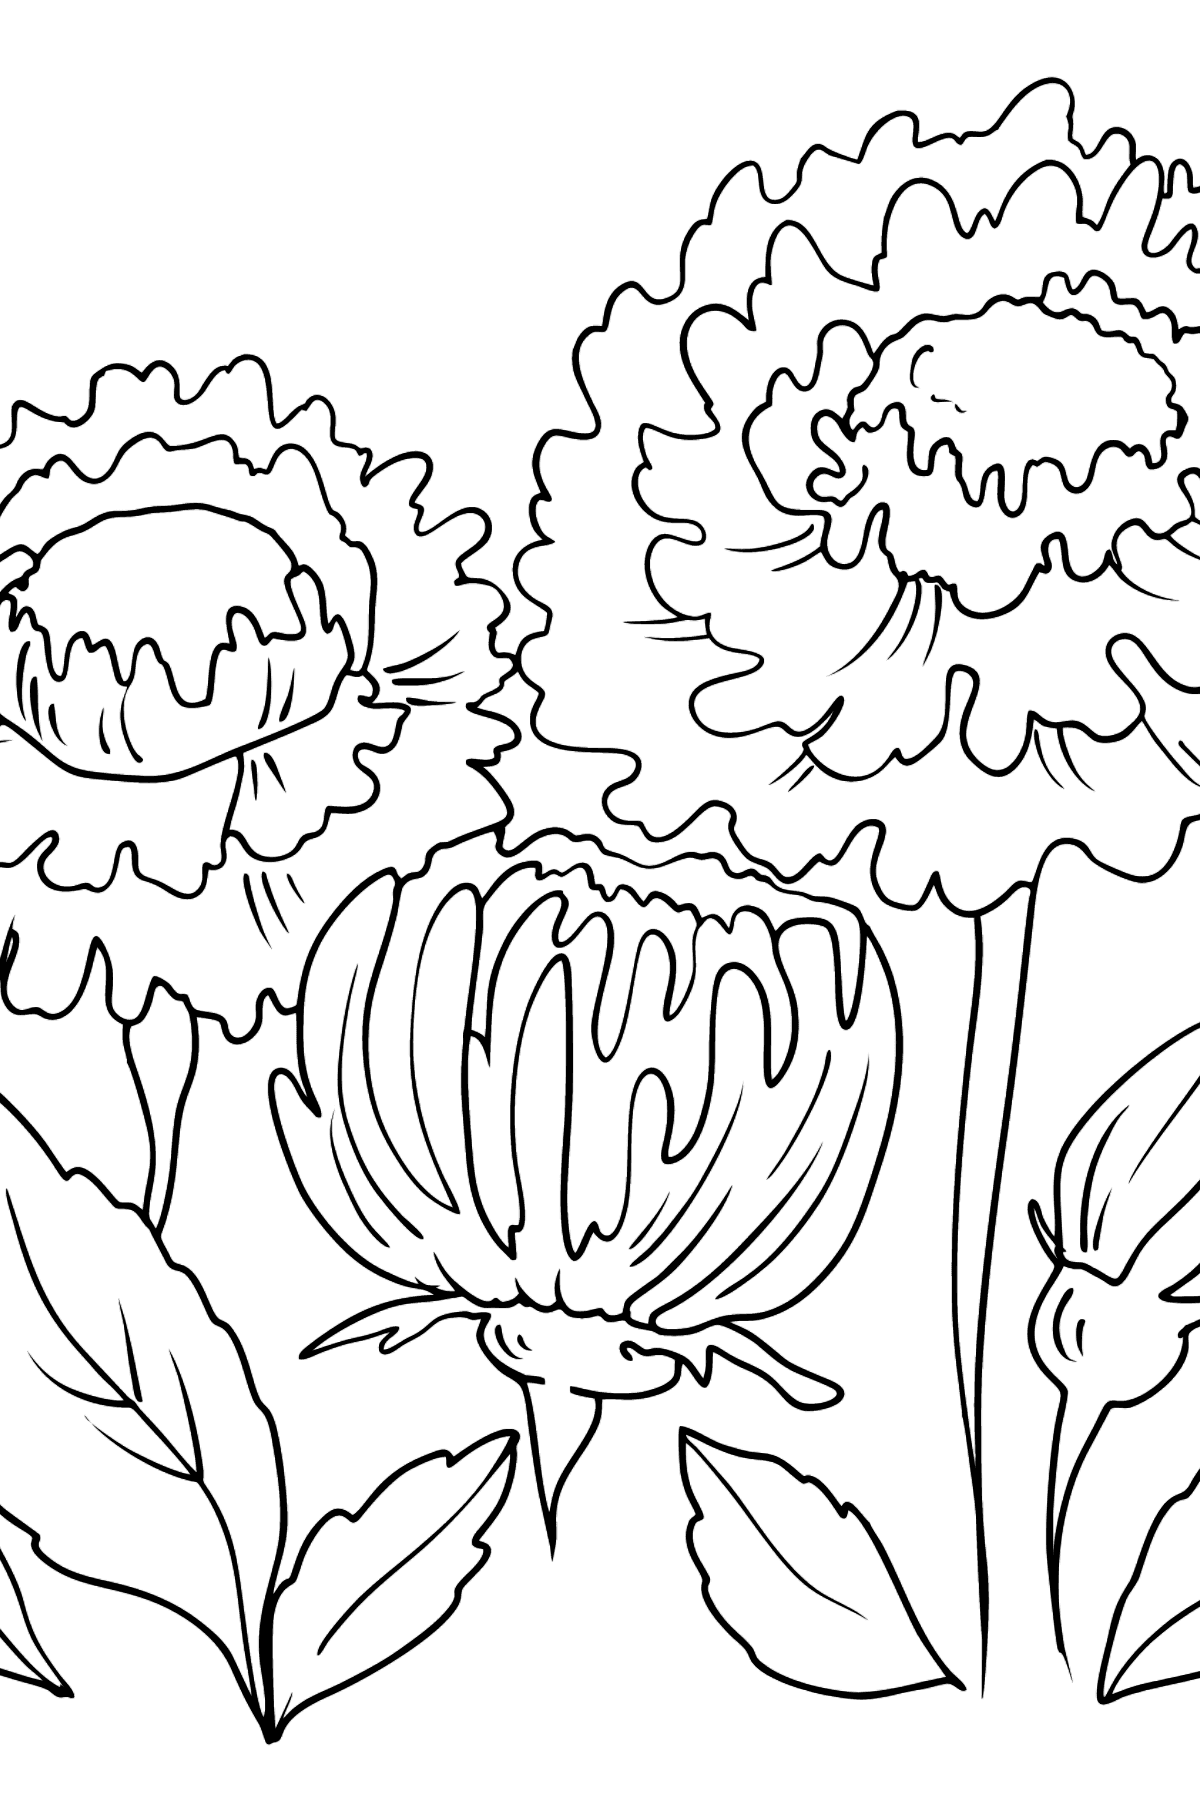 Flower Coloring Page - Asters - Coloring Pages for Kids